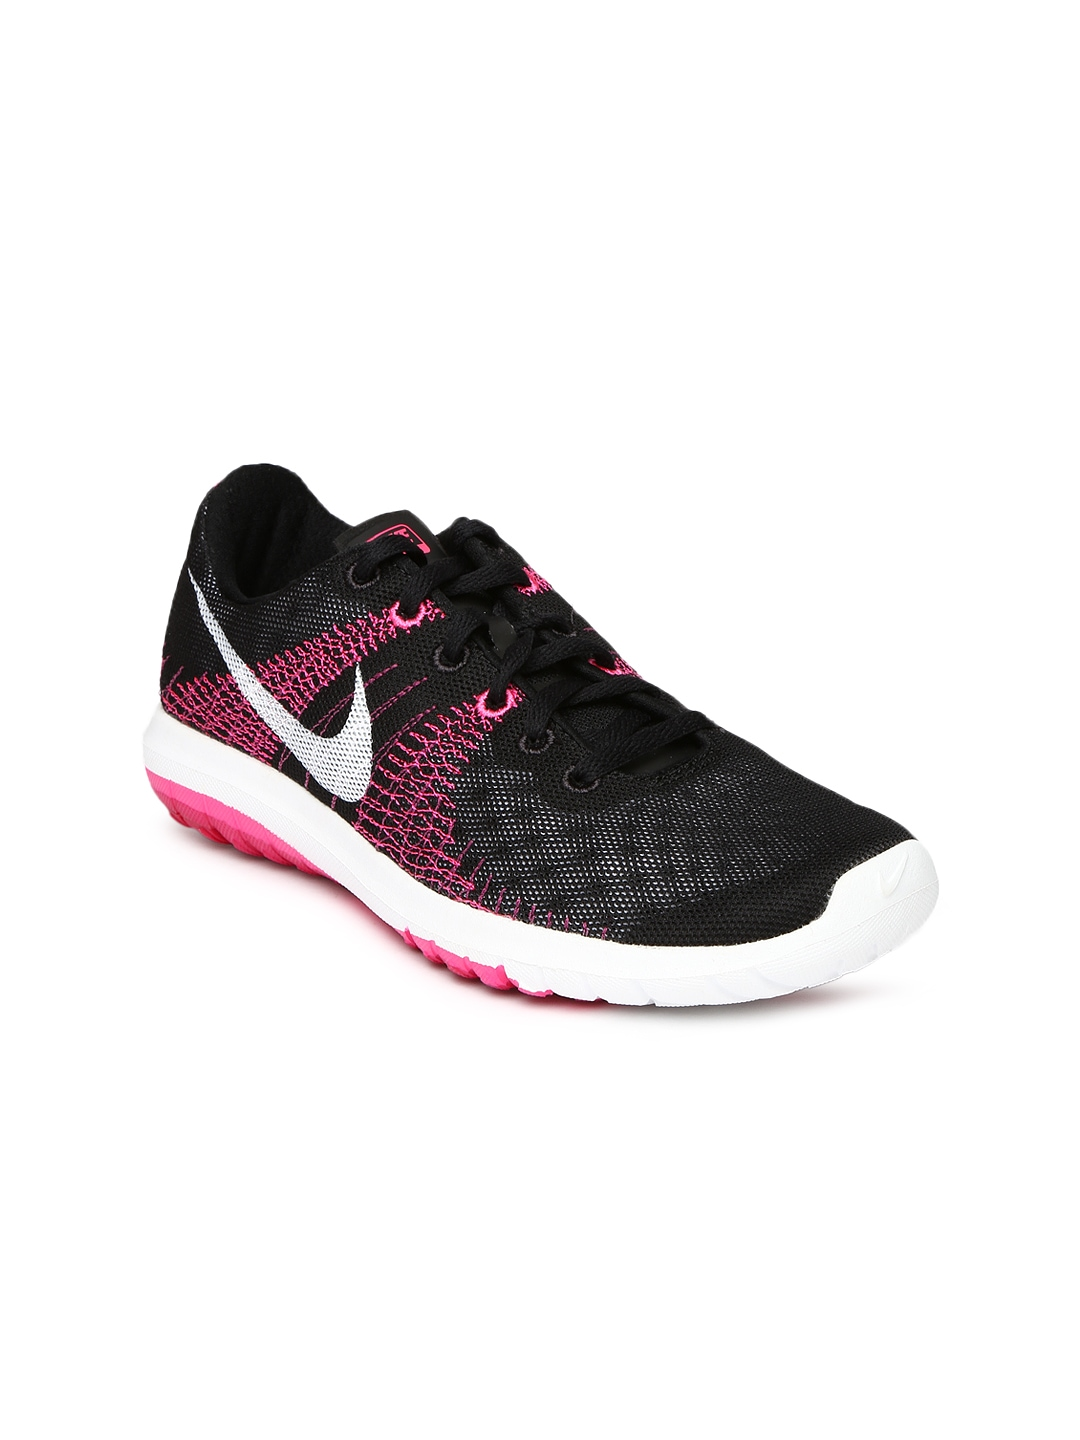 Regardless of your sport, Eastbay has a large assortment of Nike Shoes. Choose from Men's, Women's and Kids. Find the latest styles and colors in models .